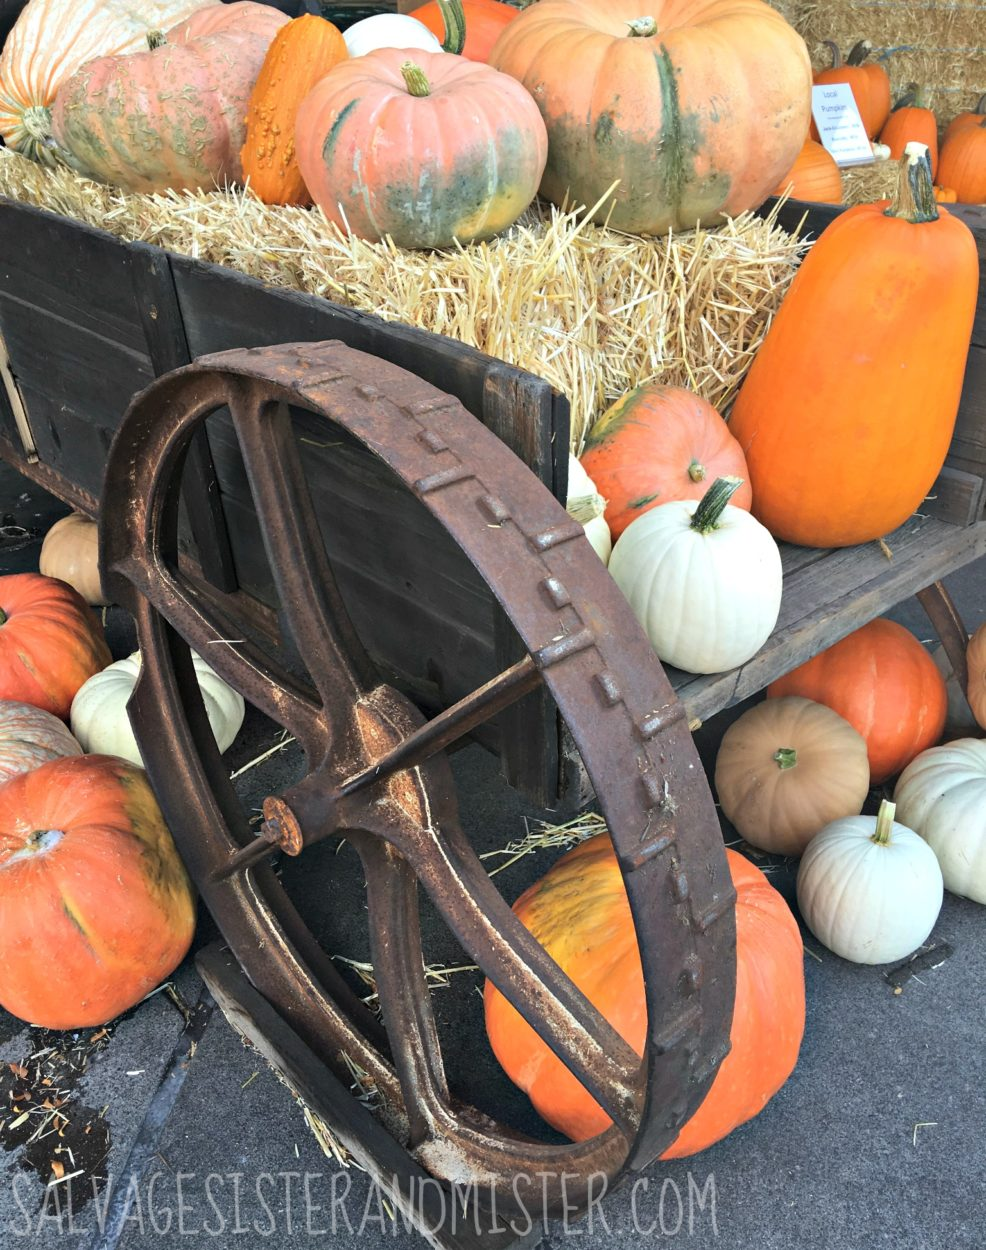 lessons from the pumpkin patch. diversity